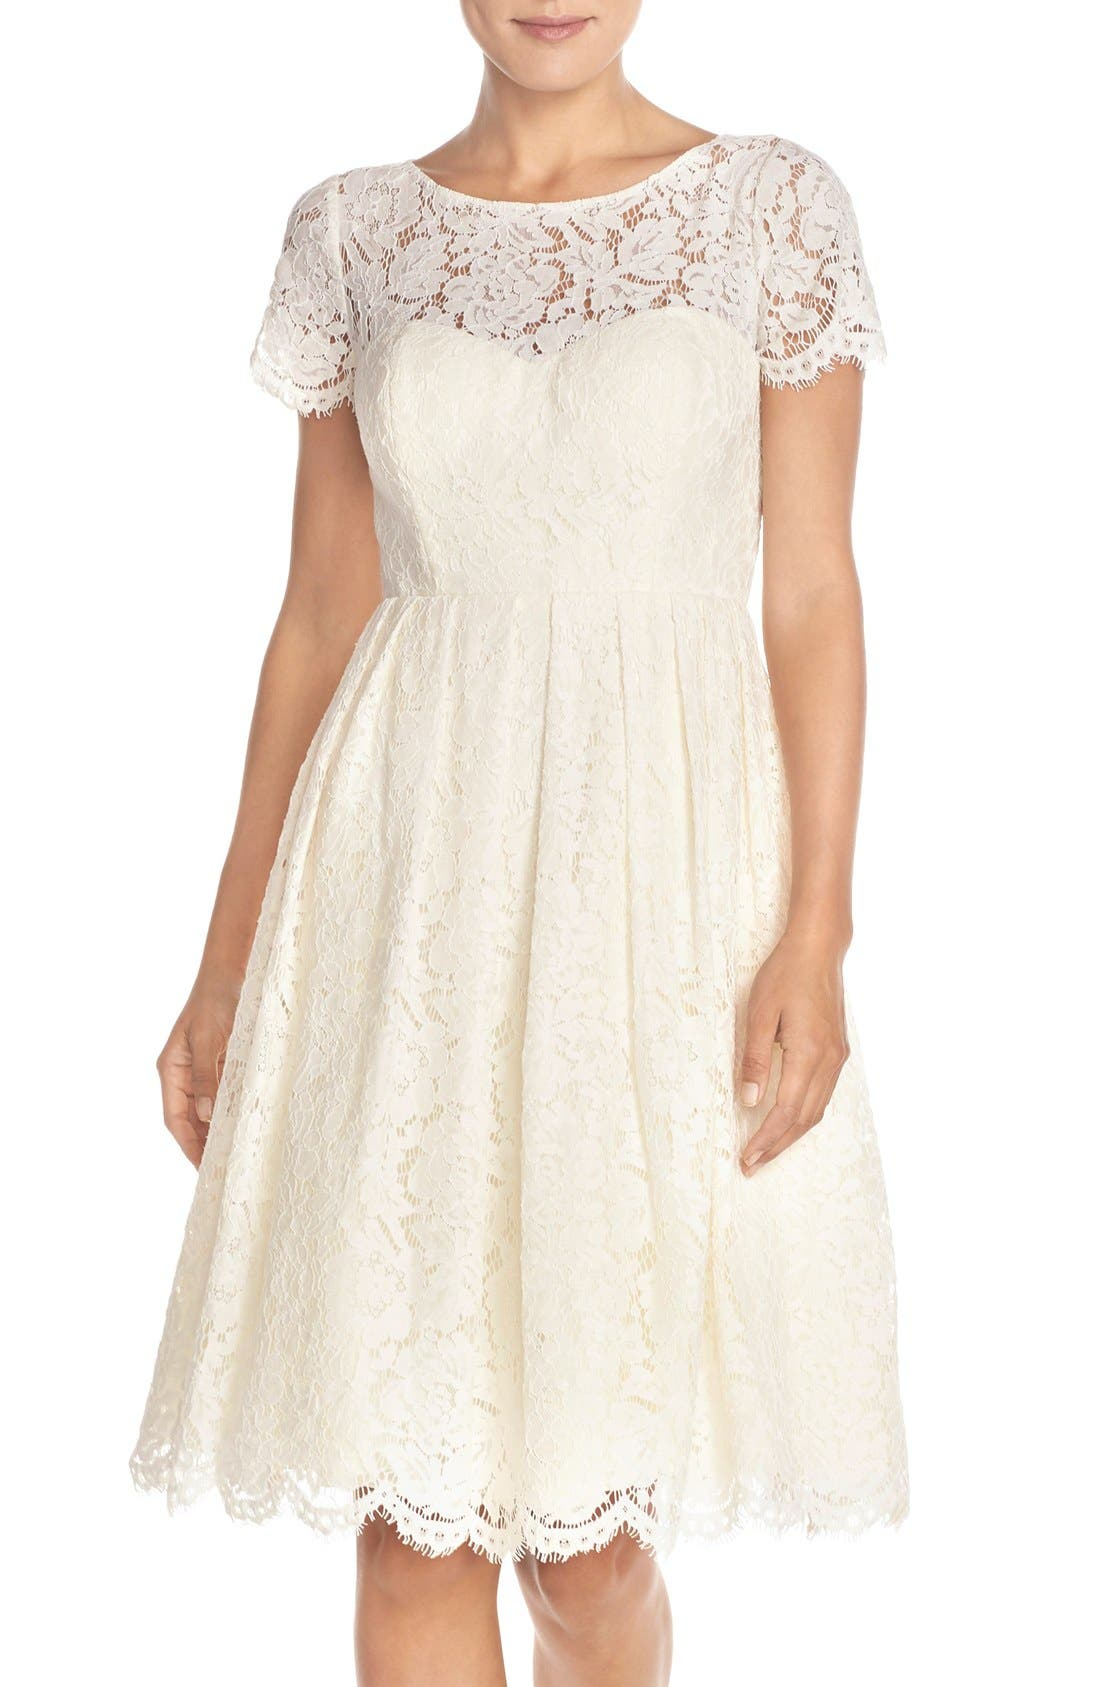 Alternate Image 1 Selected - Jenny Yoo 'Cadence' Keyhole Back Lace Fit & Flare Dress